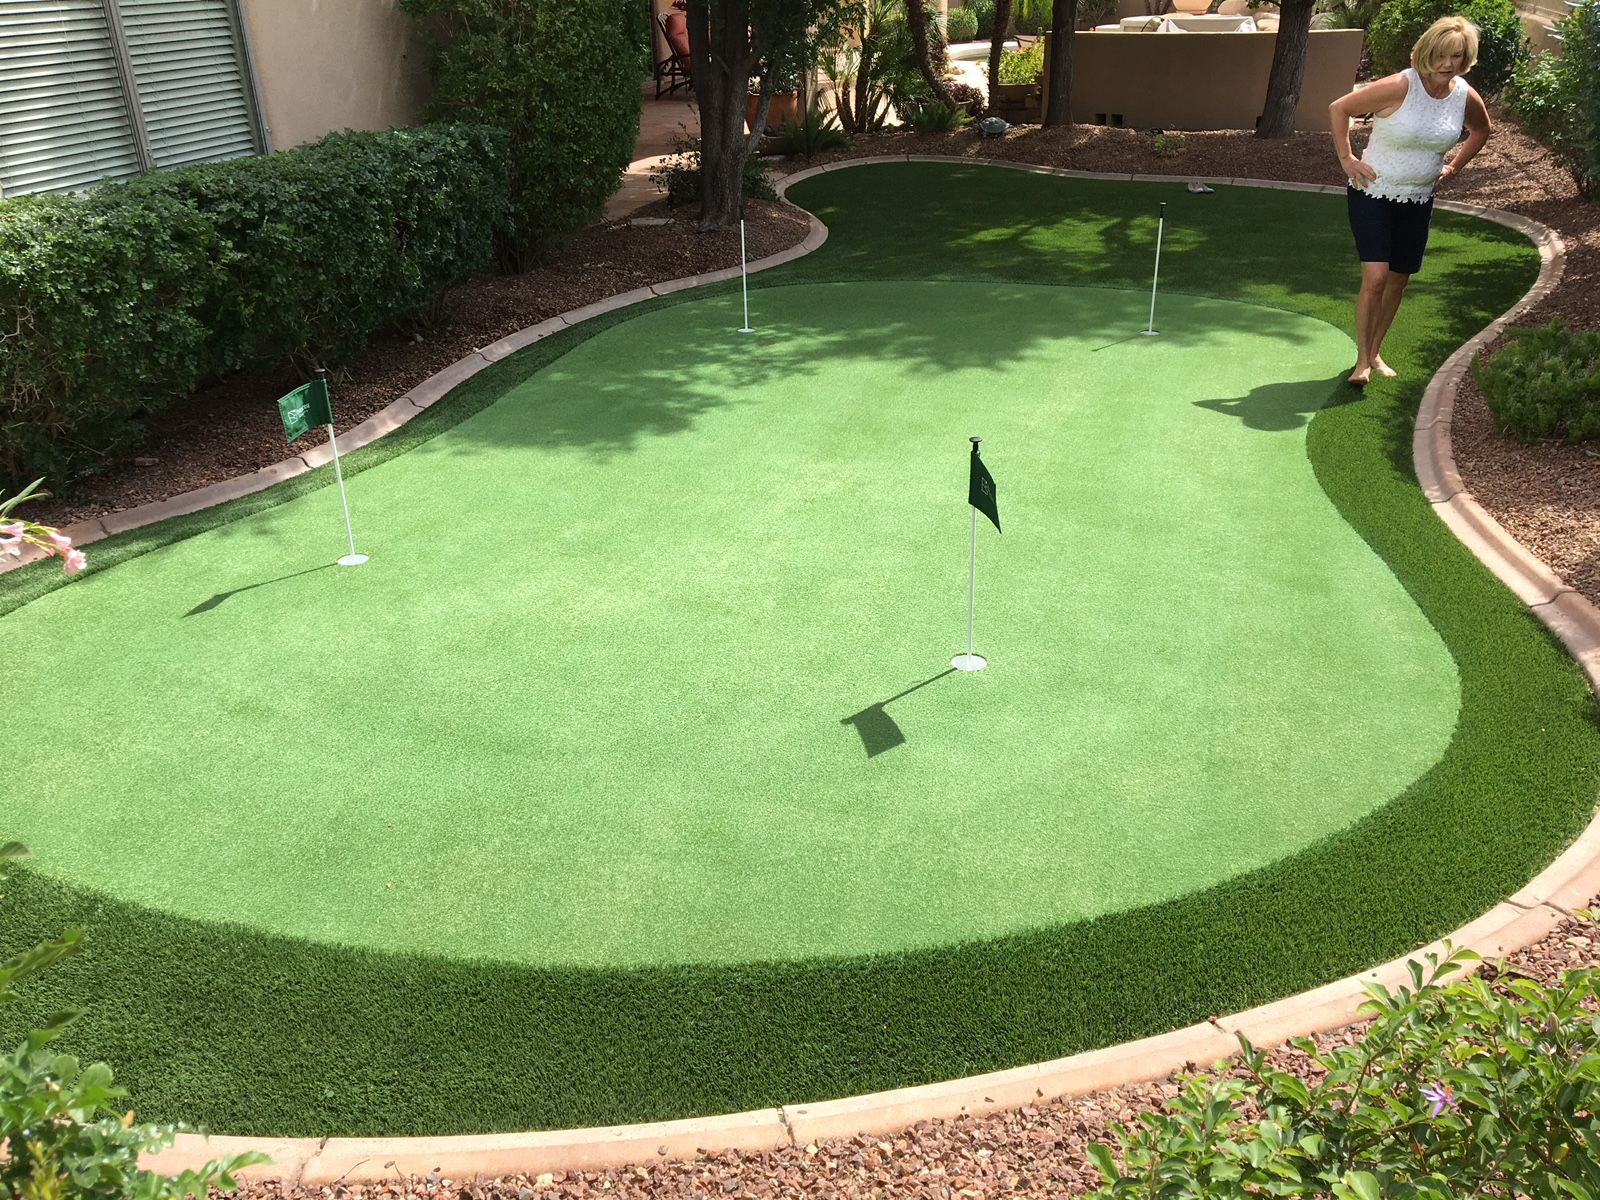 Custom Artificial Turf Putting Green Free Estimates Www Paradisegreens Com Artificial Turf Backyard Artificial Grass Installation Artificial Turf